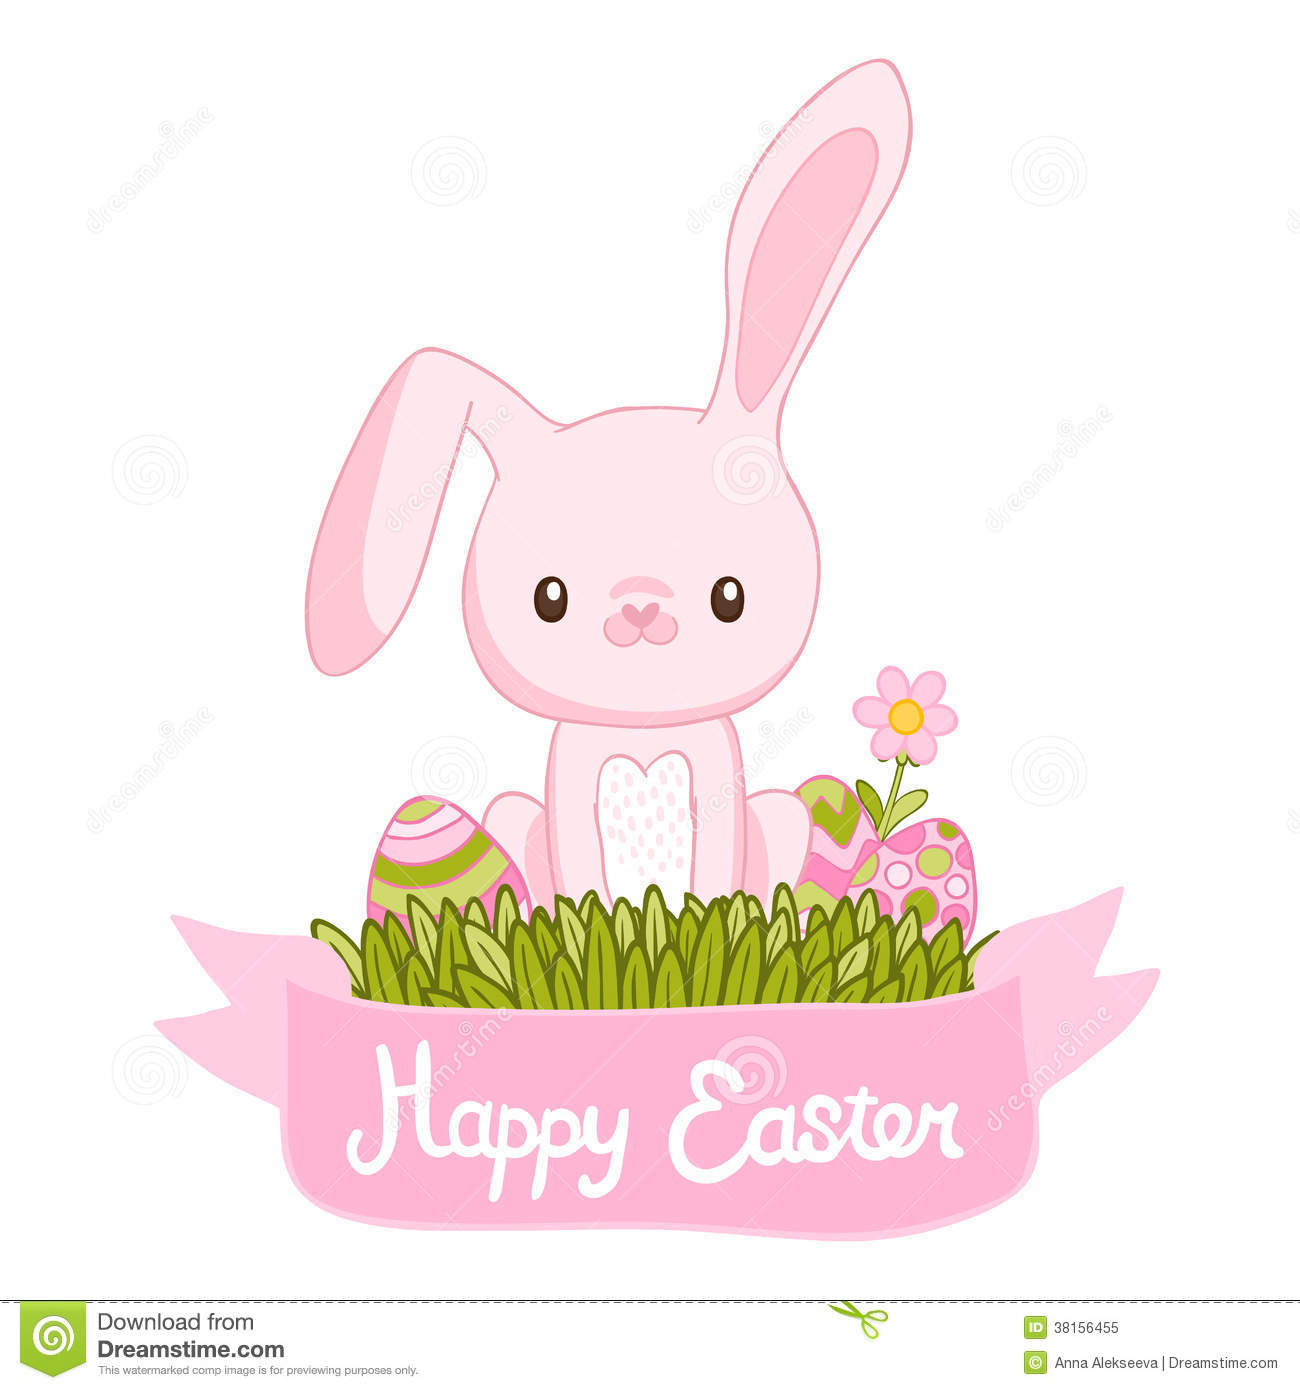 Happy Easter Cartoon Cute Bunny And Eggs Stock Vector ...